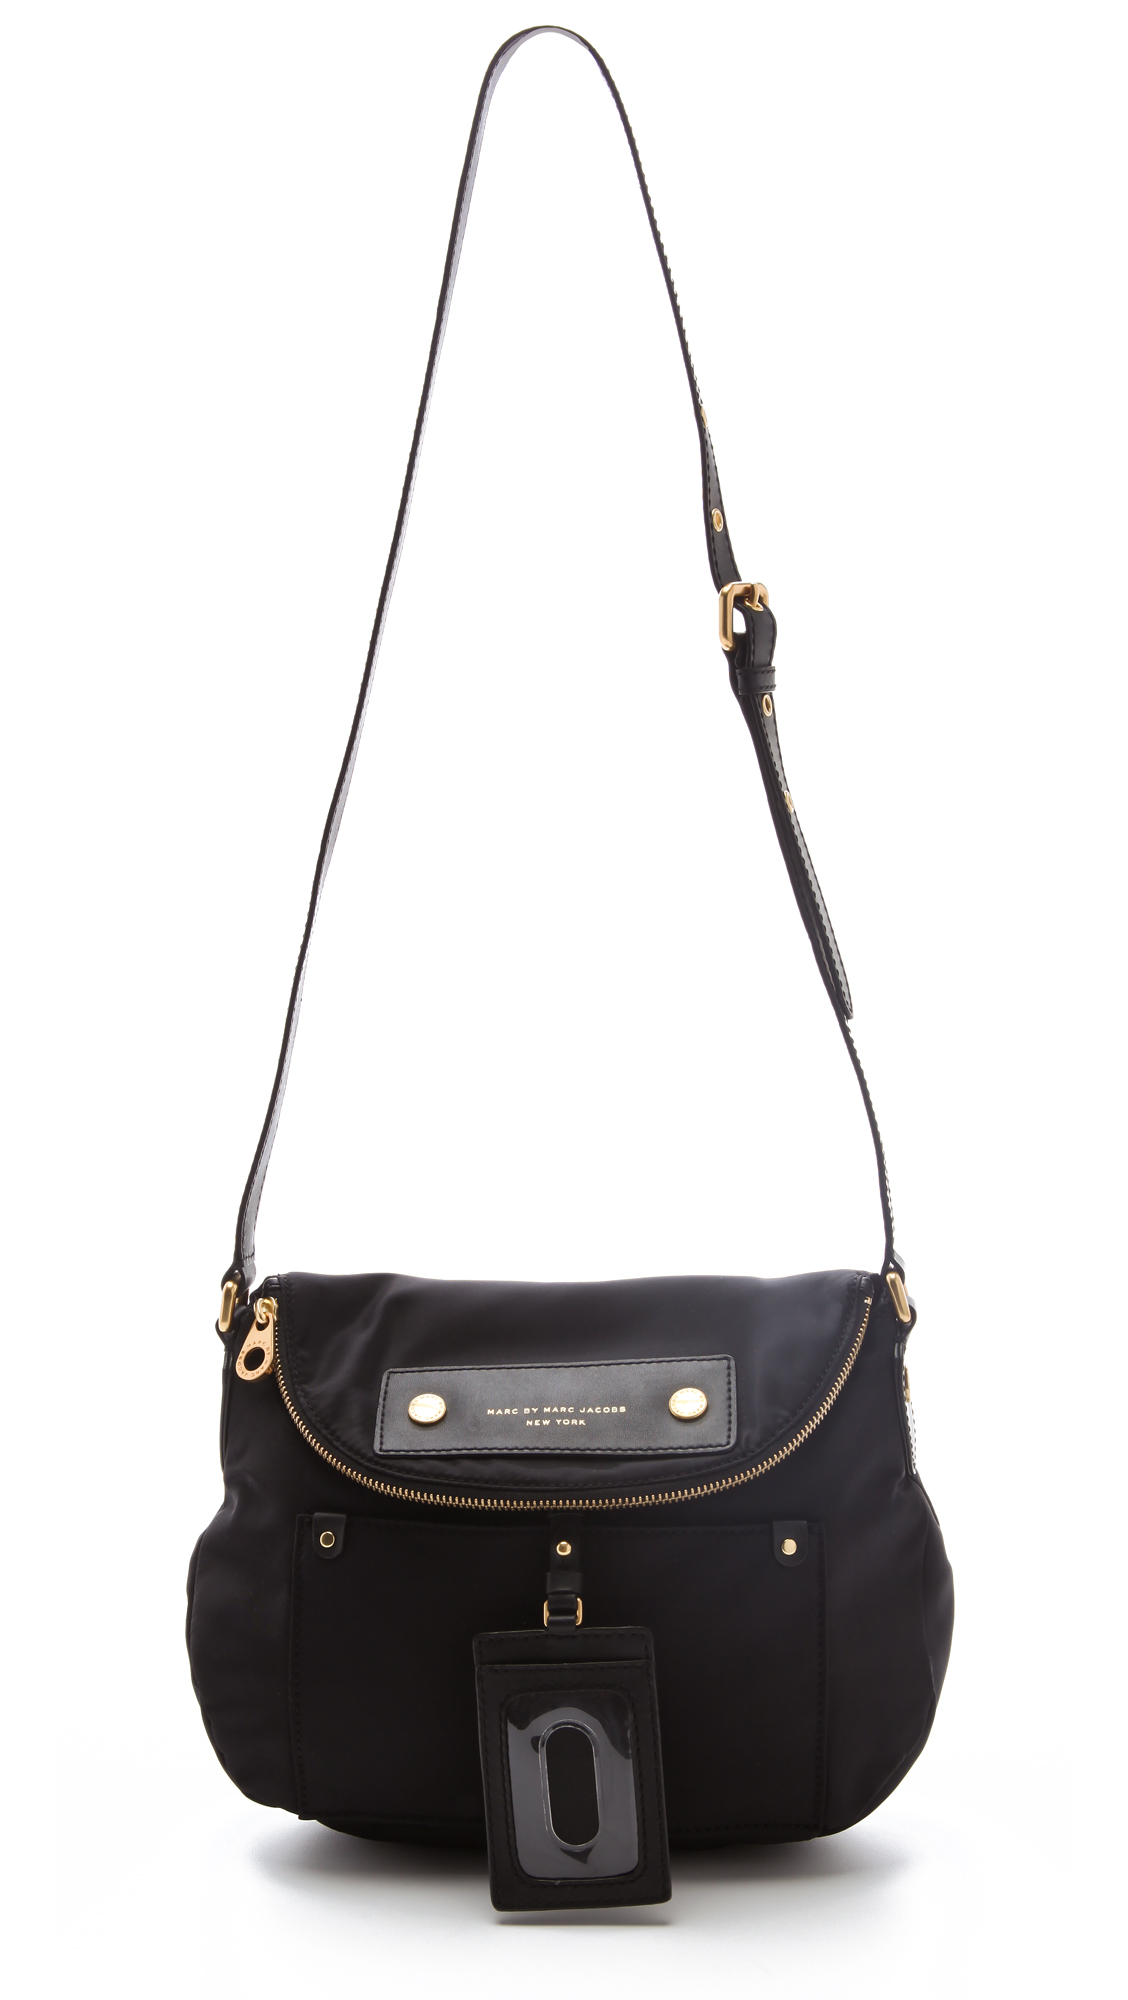 25a4d2038f Gallery. Previously sold at  Shopbop · Women s Marc Jacobs Natasha ...